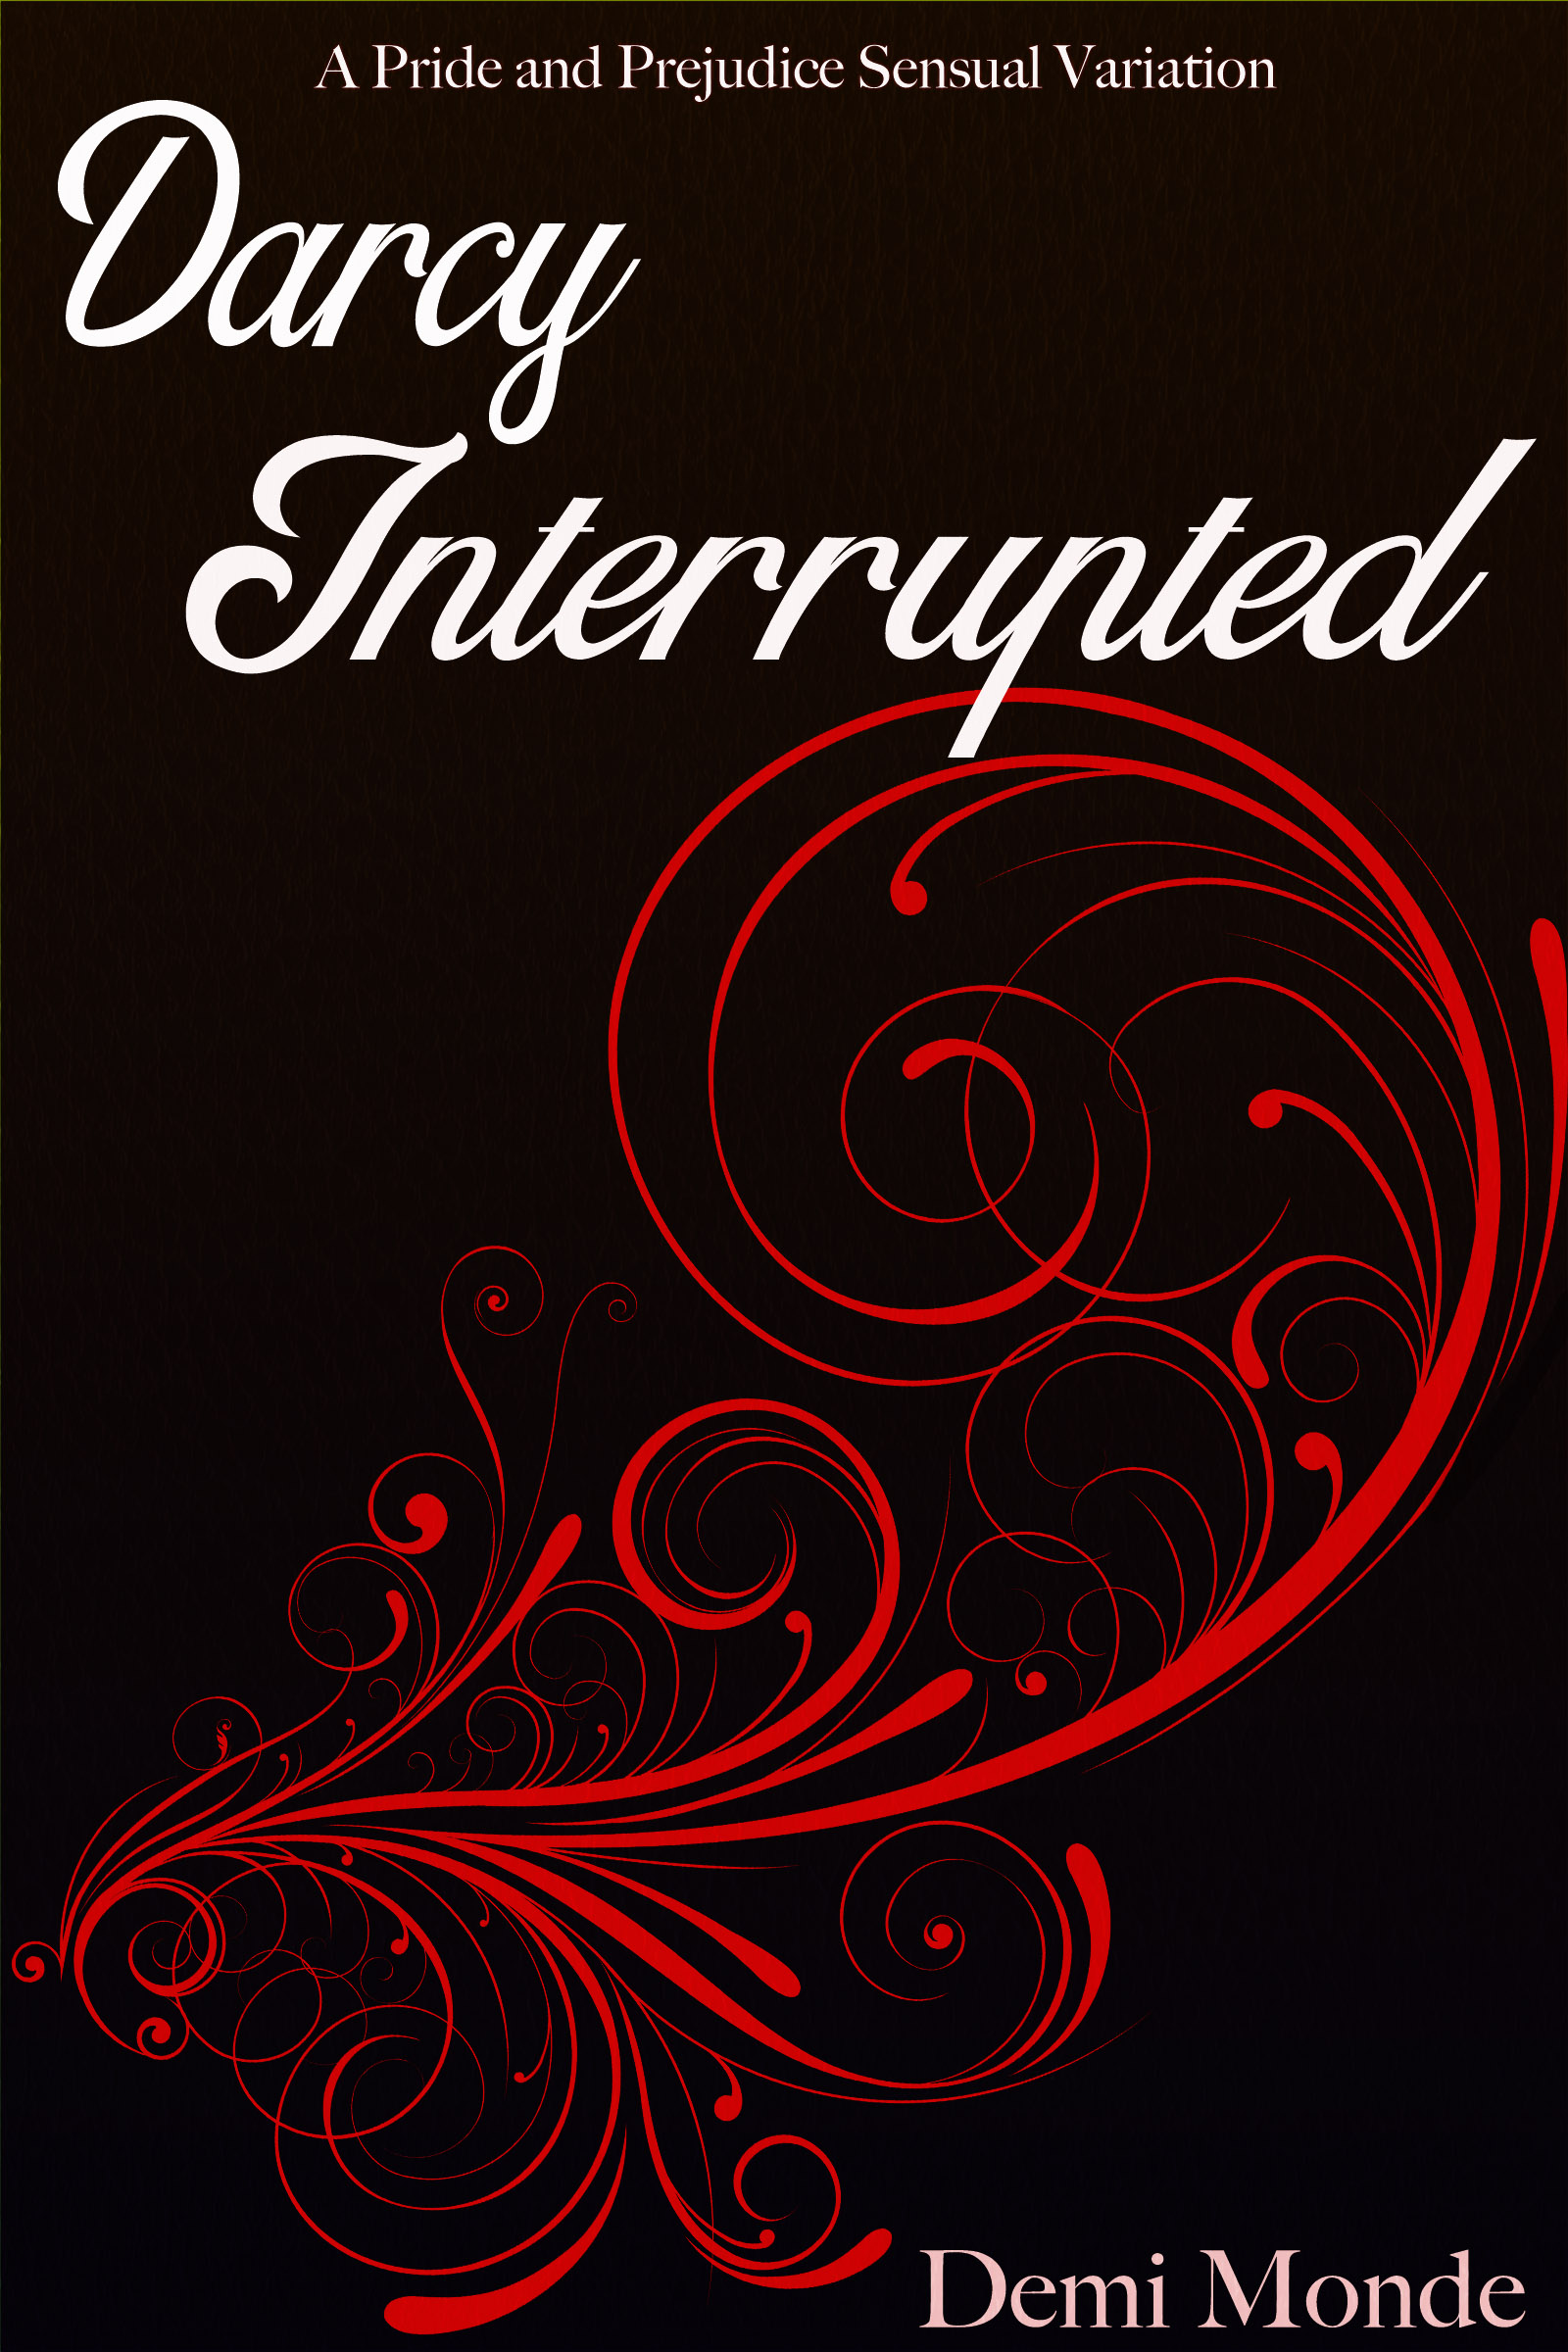 Darcy Interrupted | A Pride and Prejudice Sensual Variation, an Ebook by  Demi Monde